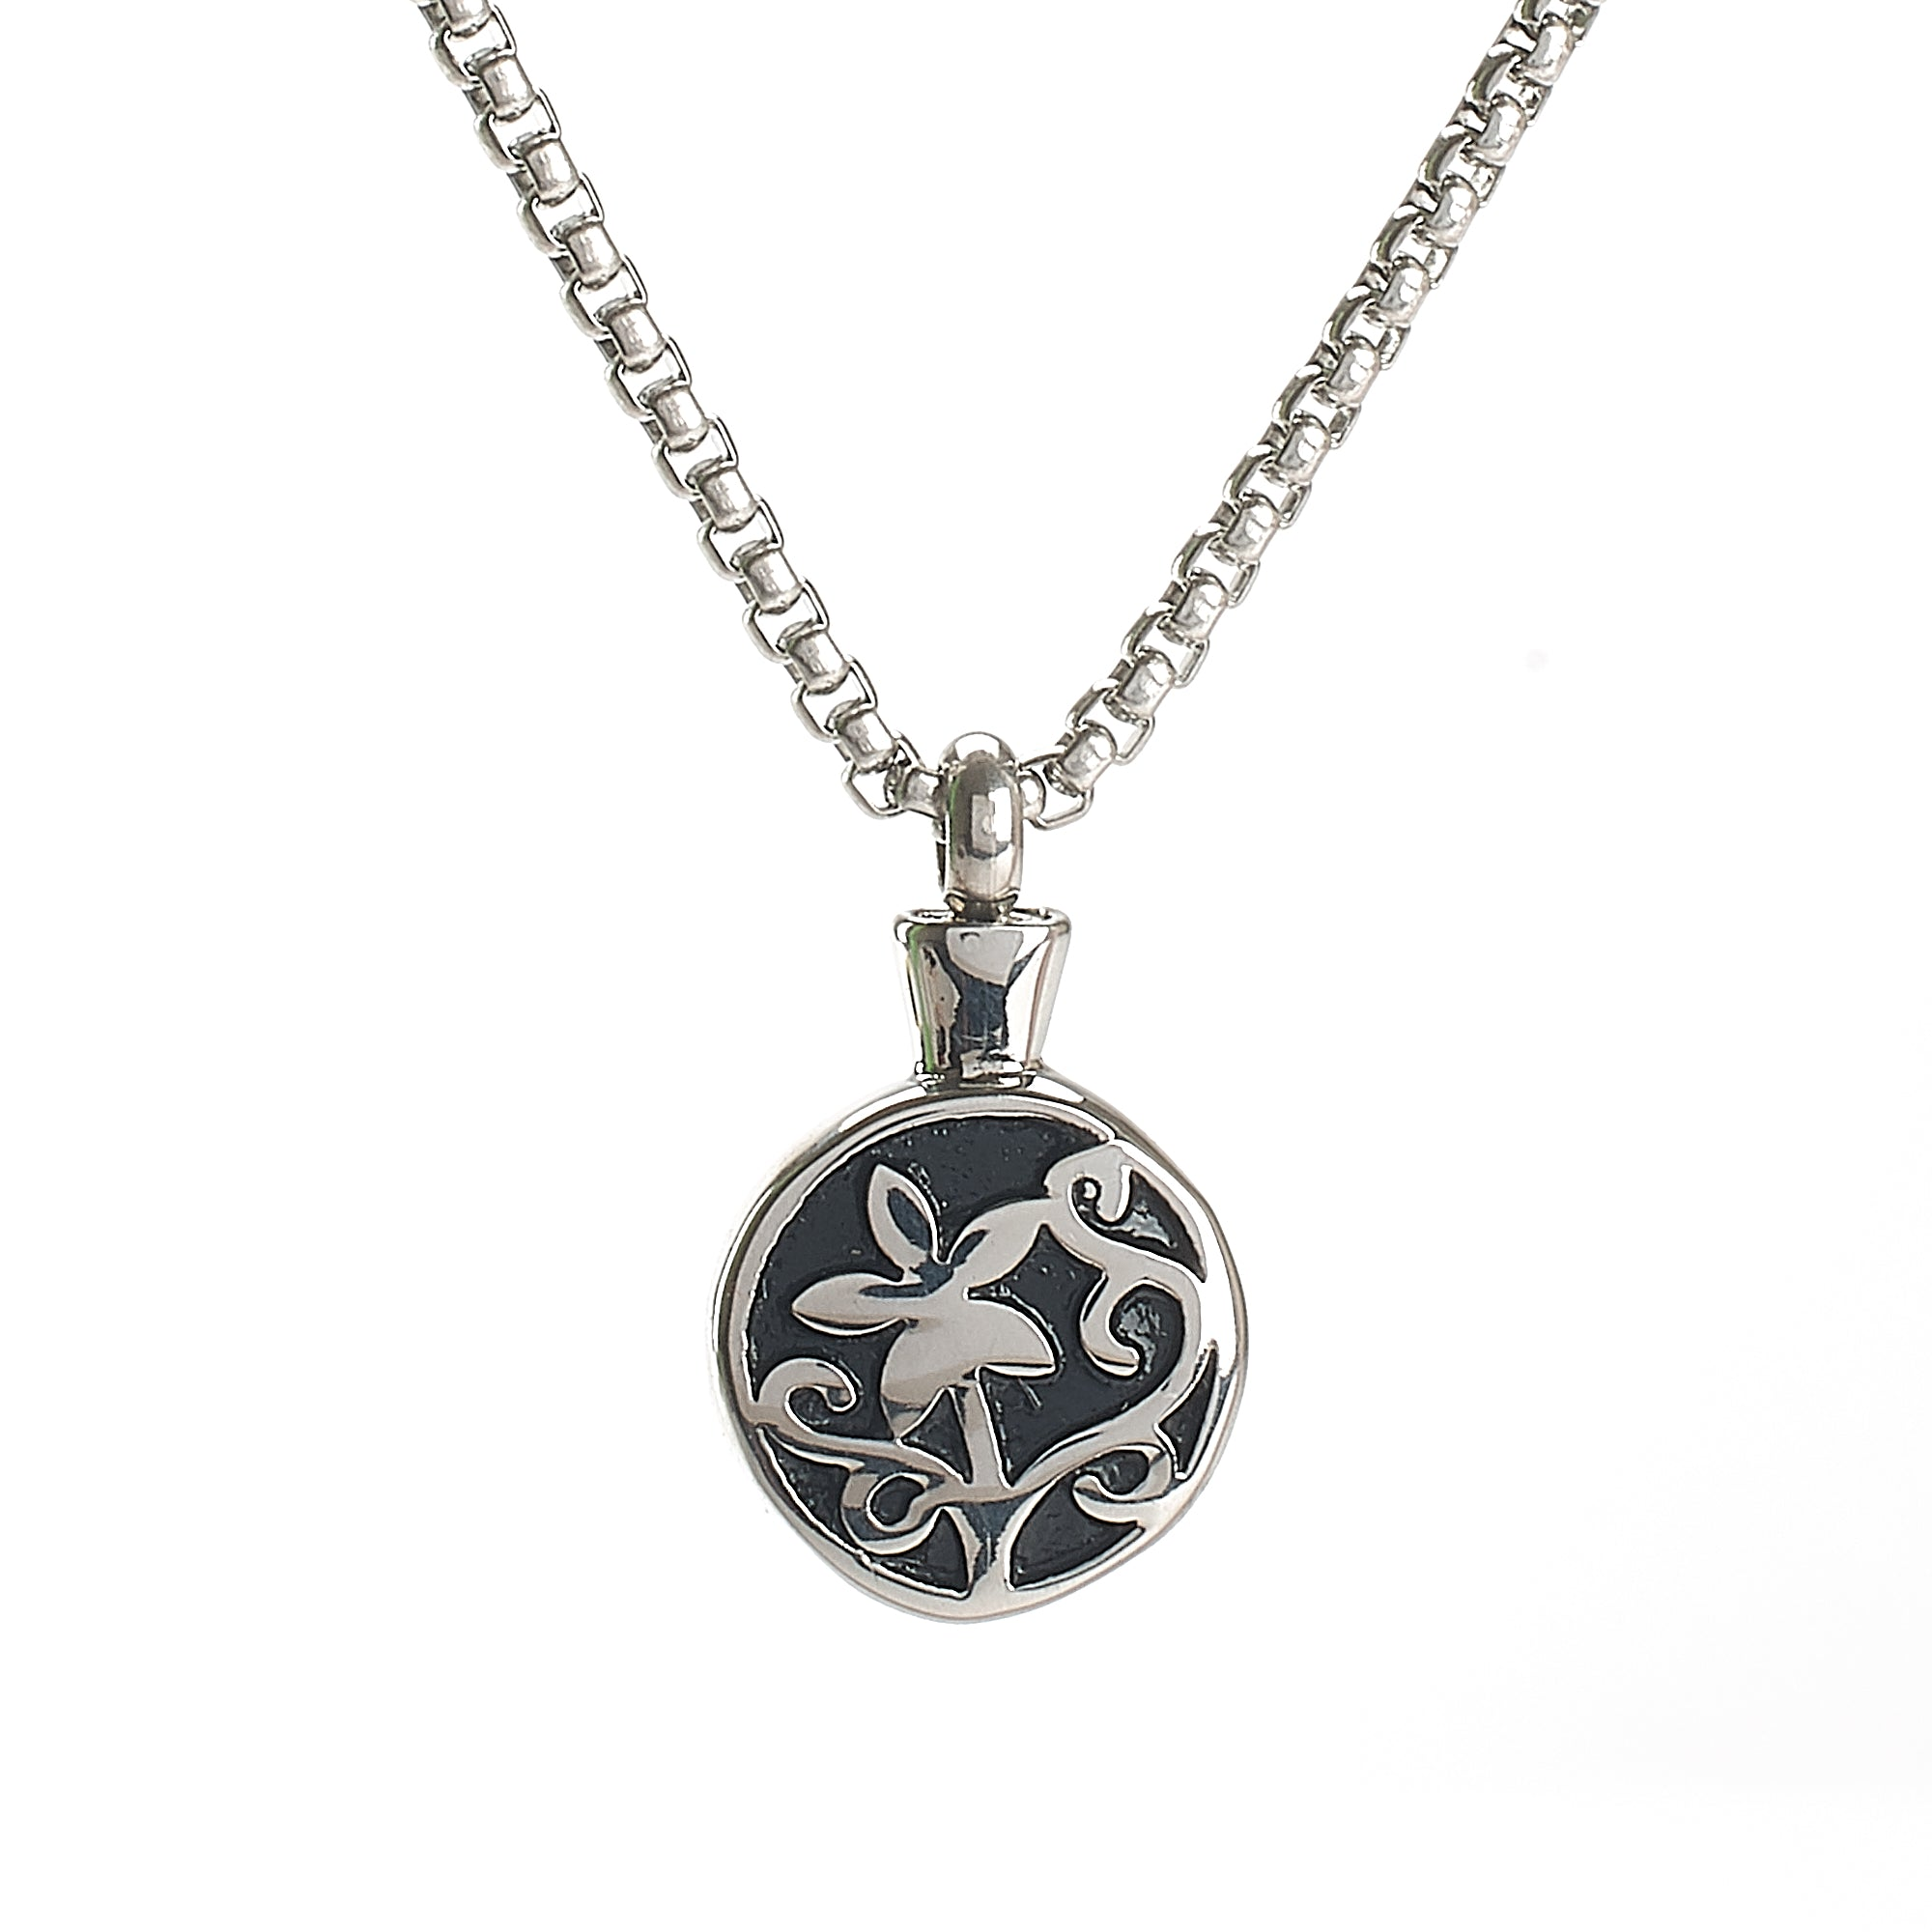 Cremation Pendant - Round Silver/Black Flower Design